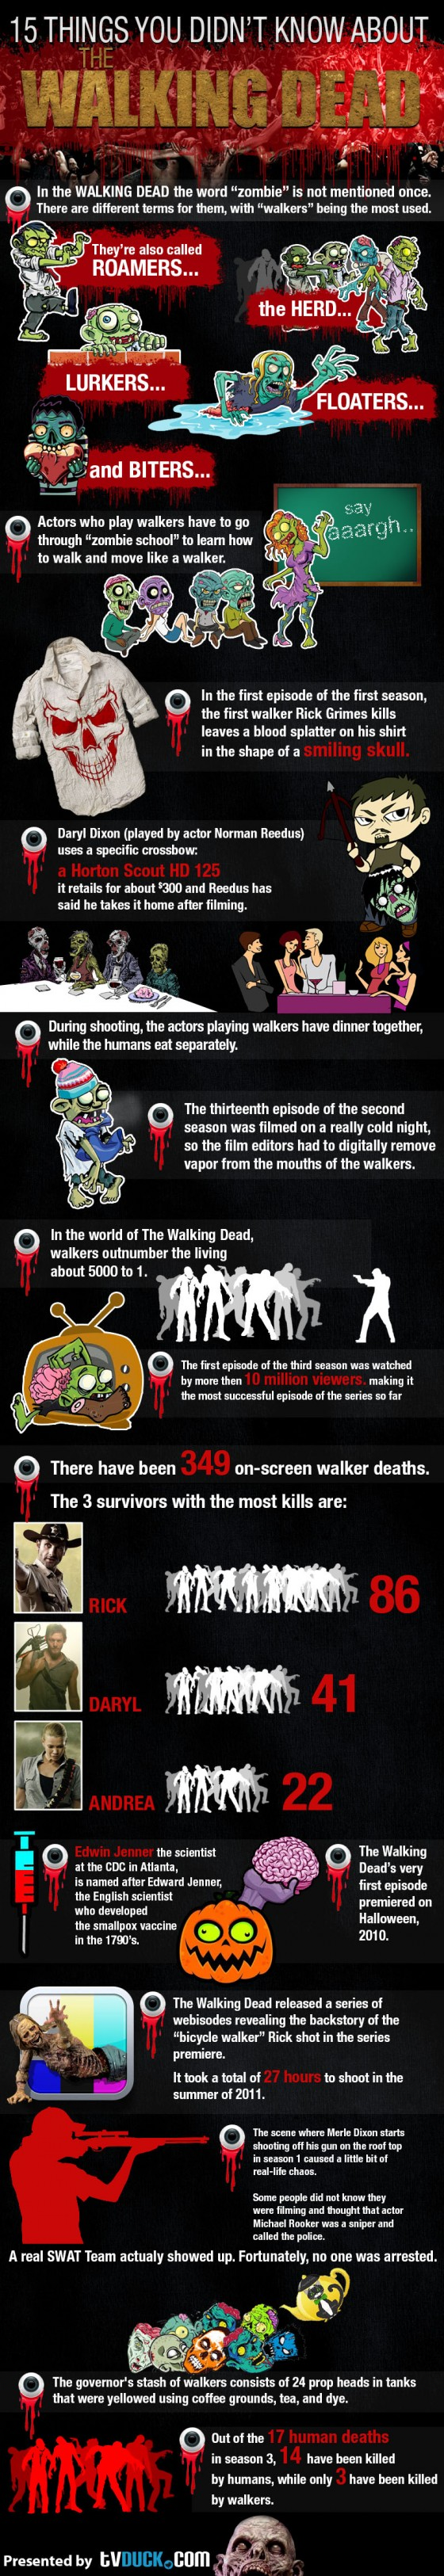 Walking Dead InfographicSeason 3 560x3251